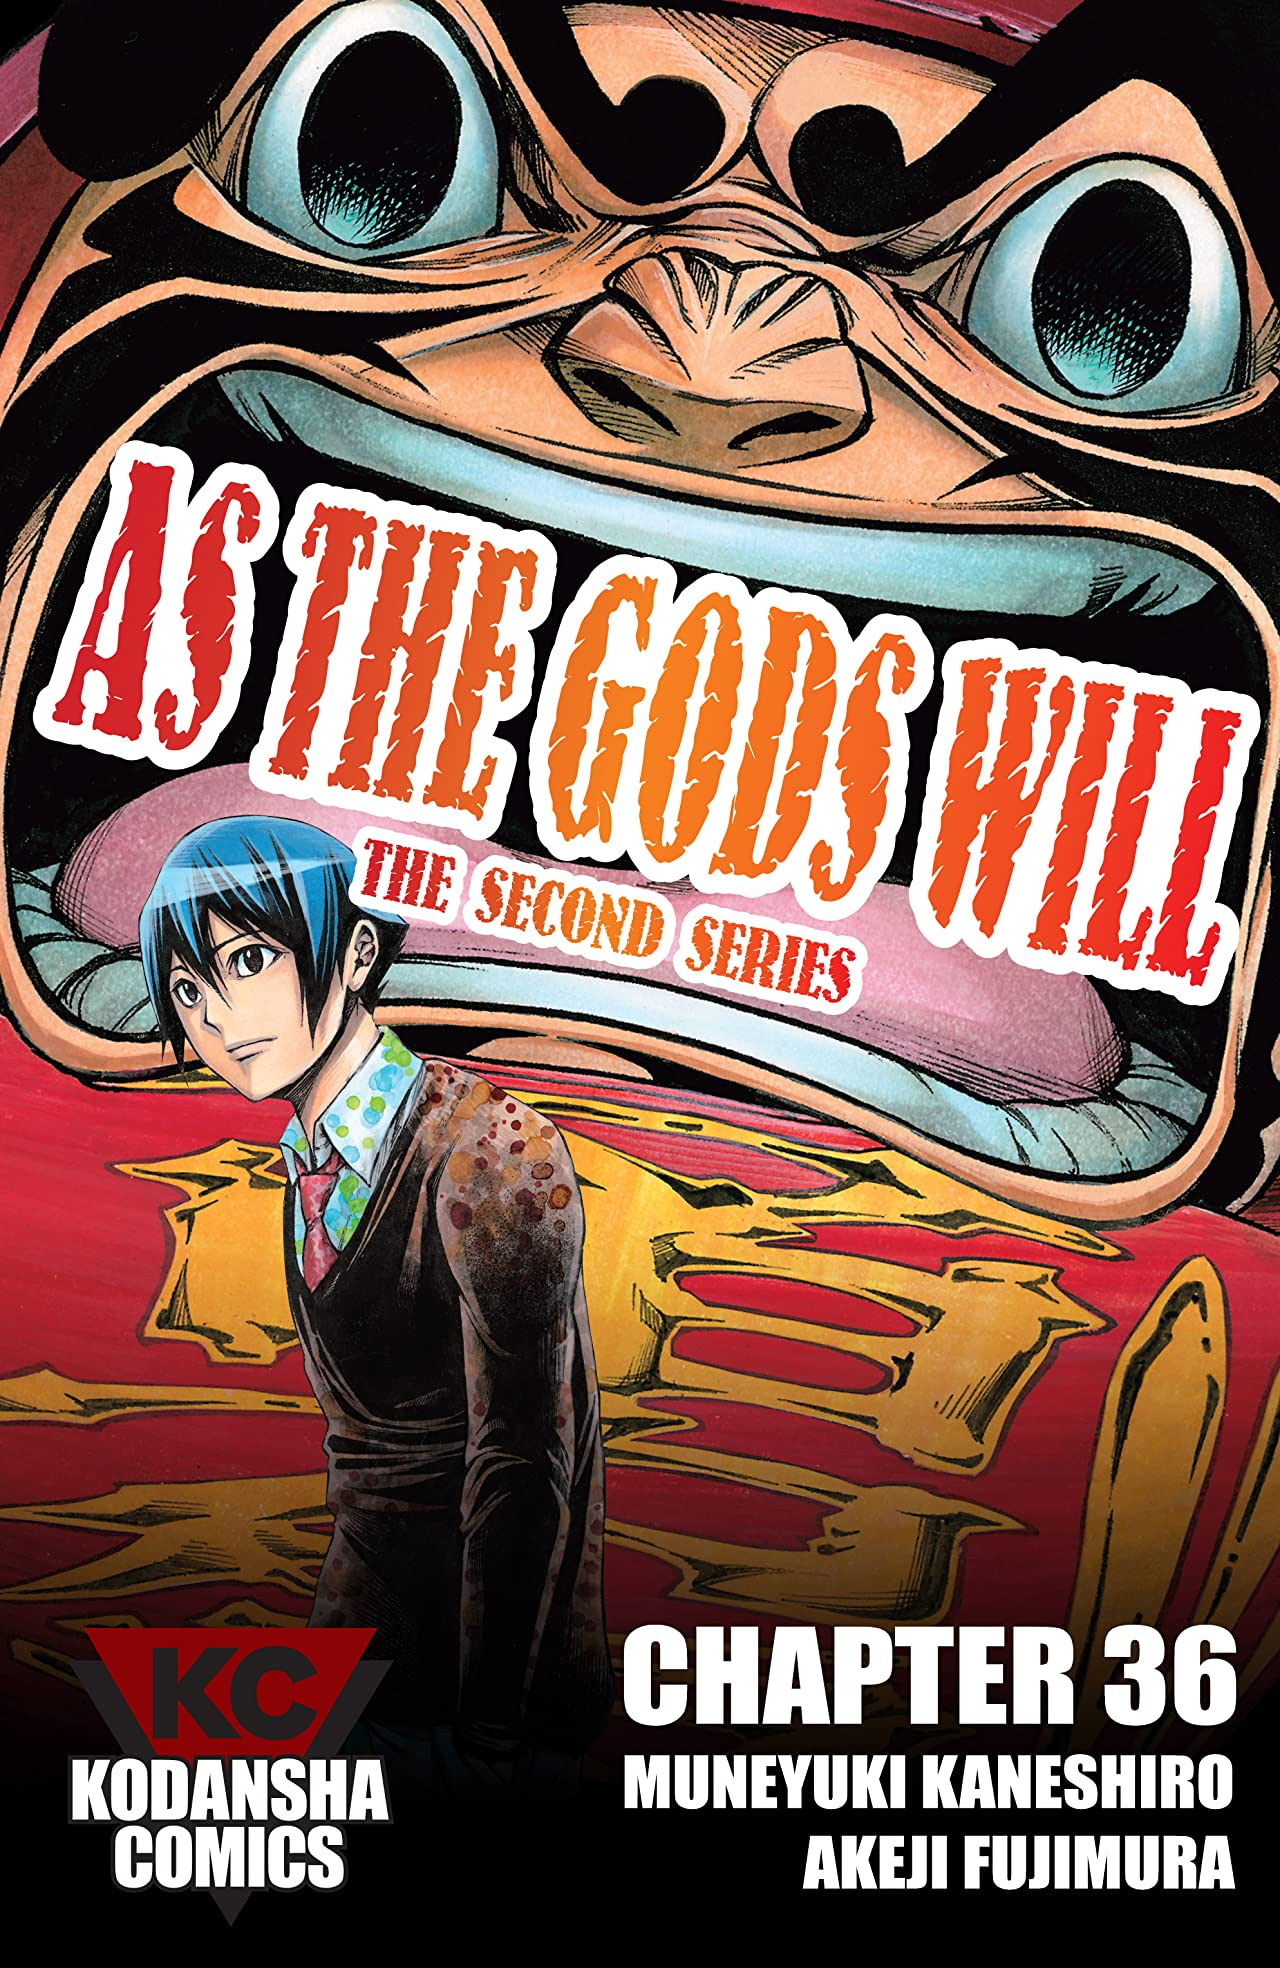 As The Gods Will: The Second Series #36